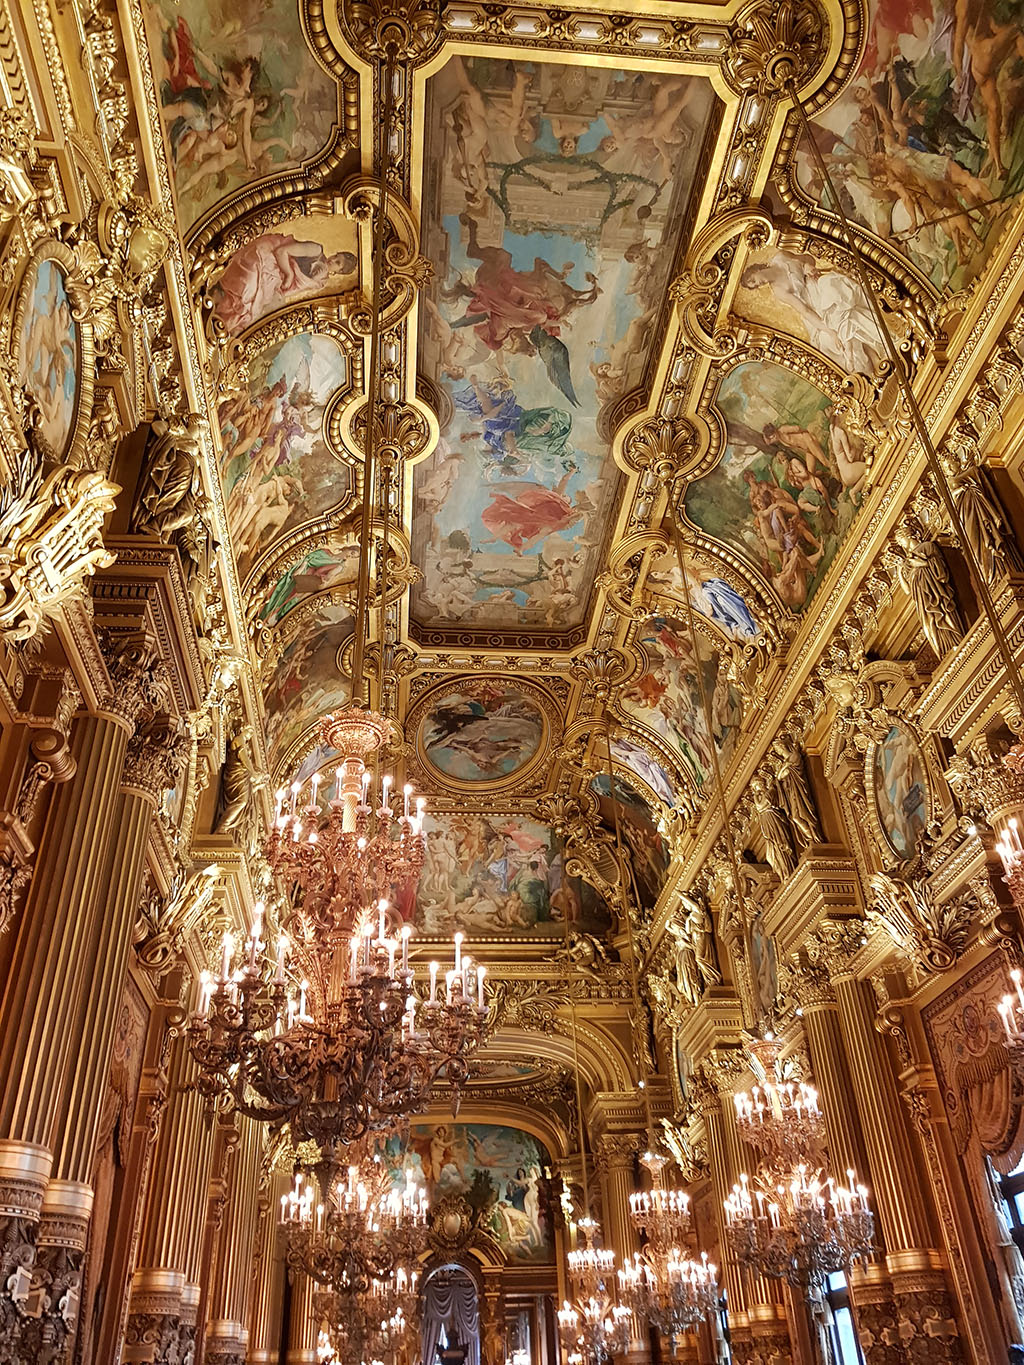 escape game opera garnier paris